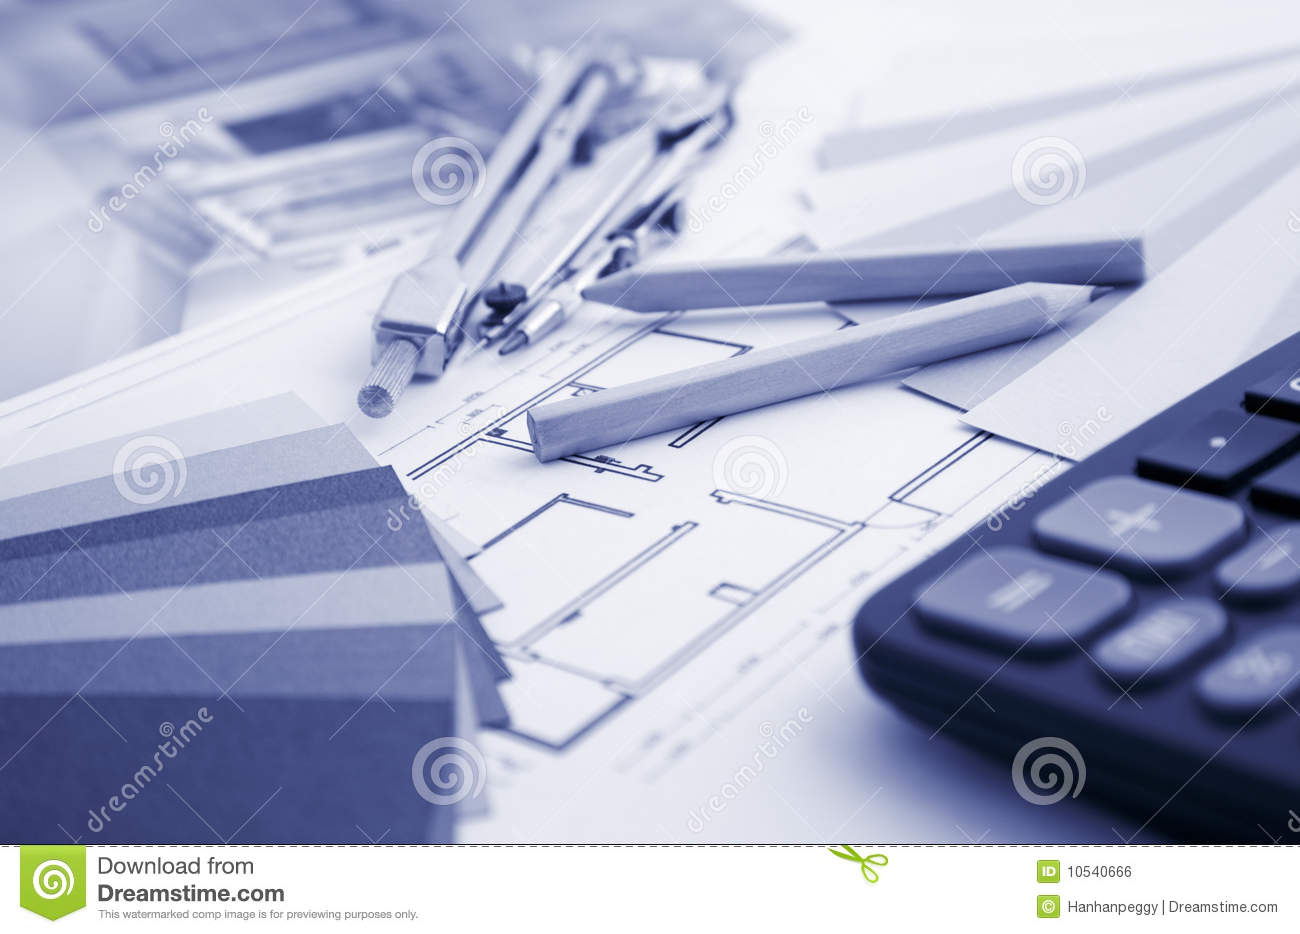 Residential Interior Design And Tools Stock Photo - Image of ...